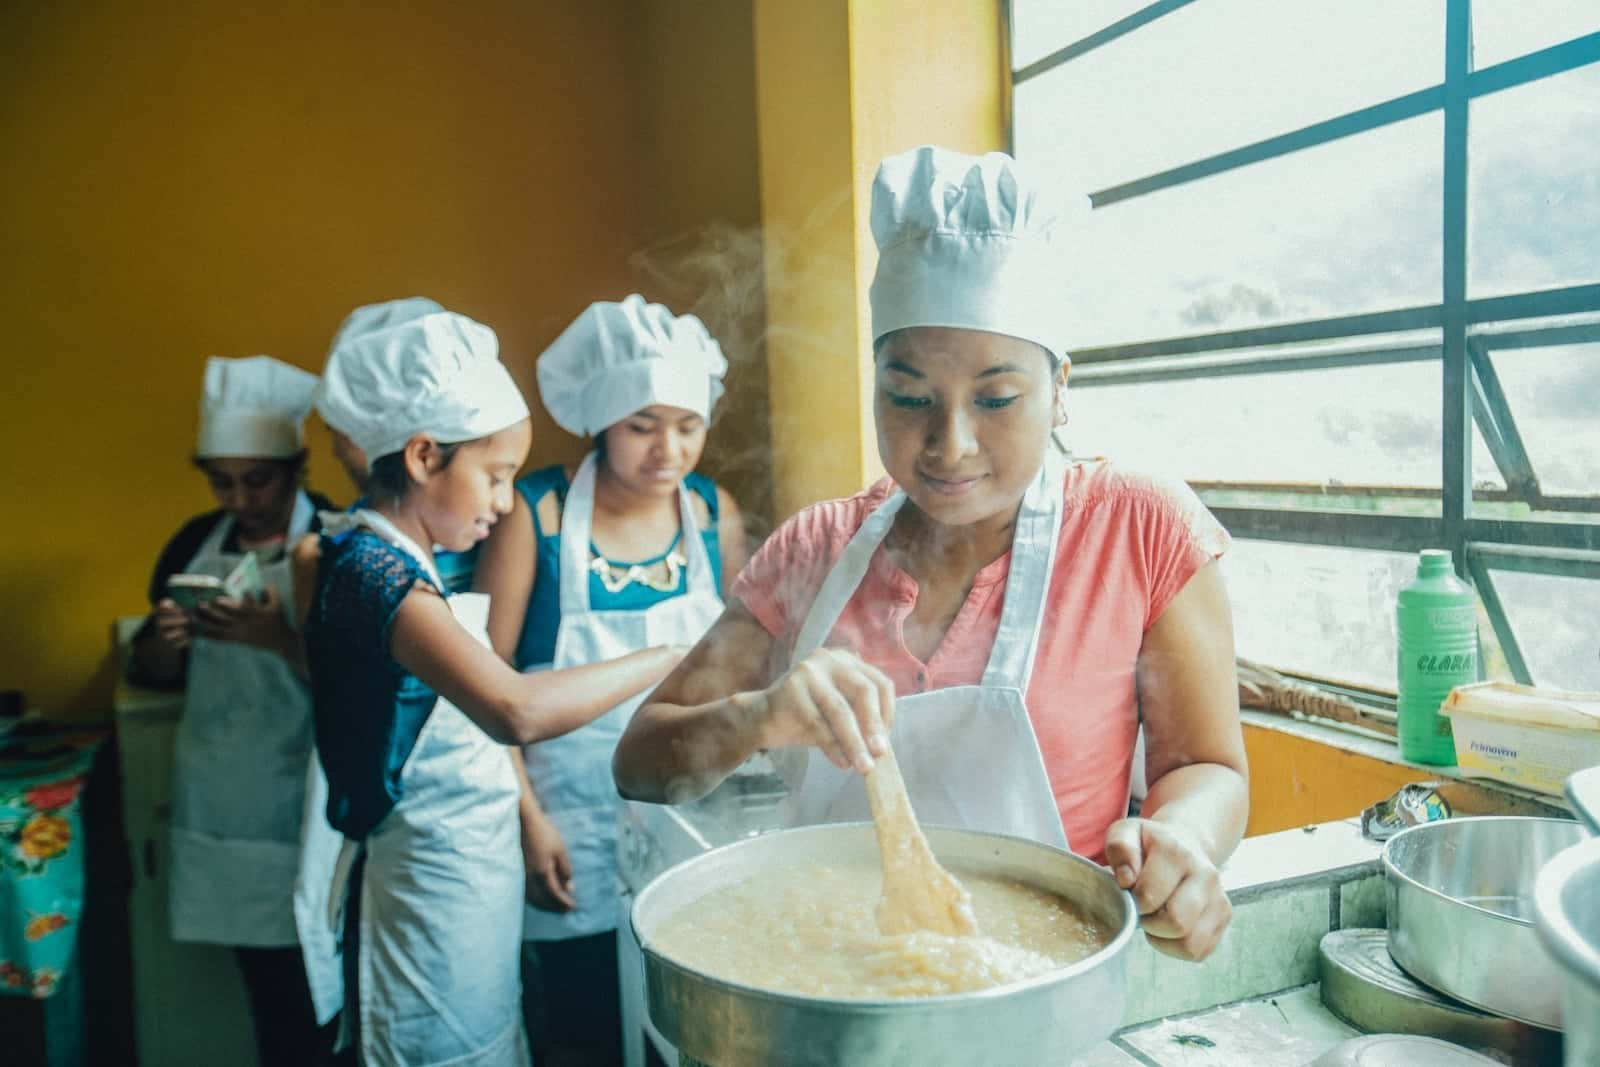 A young woman in a white apron and chef's hat stirs a large pot. Behind her, a group of girls focuses on a pan. They are doing vocational training in baking to escape poverty.